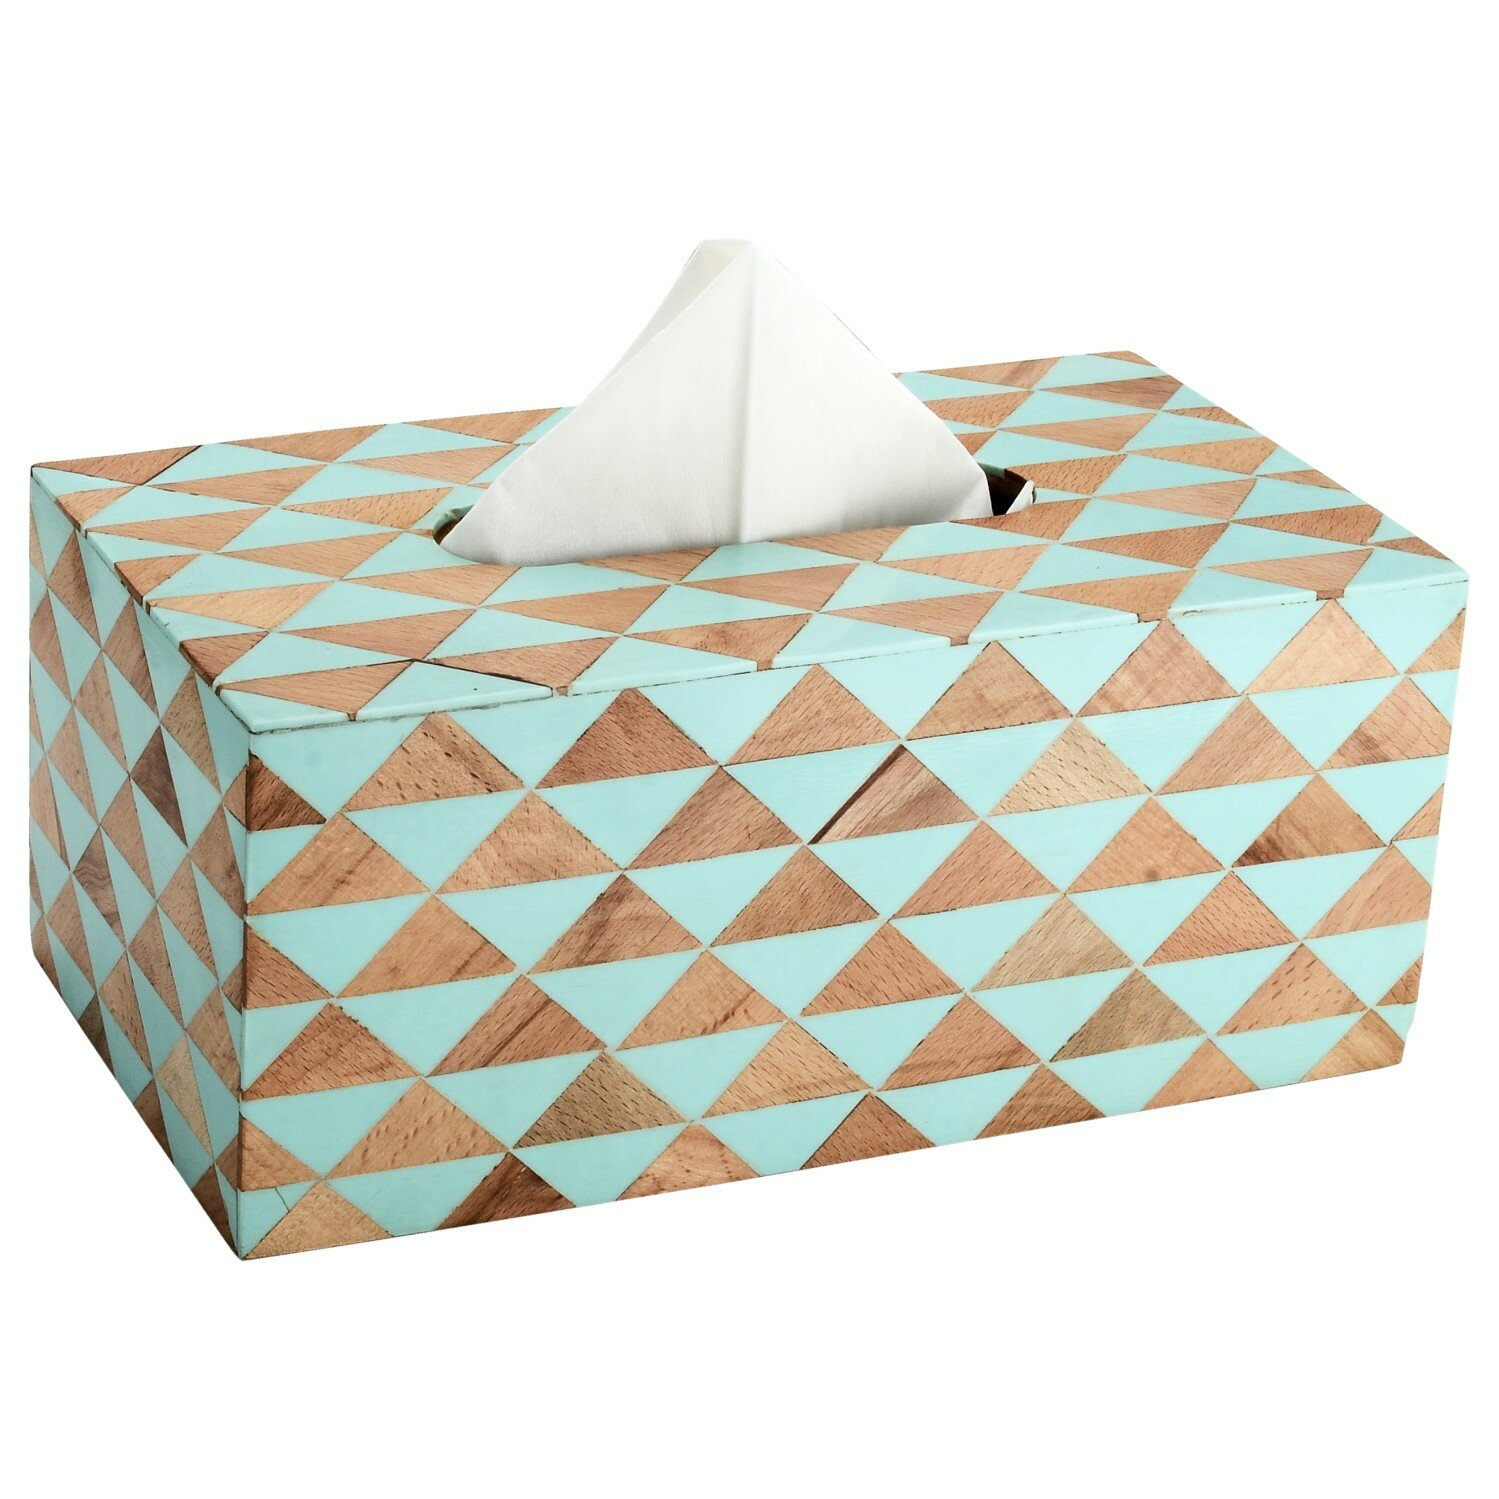 Wrought Studio Leonie Mosaic Tissue Box Cover Reviews Wayfair